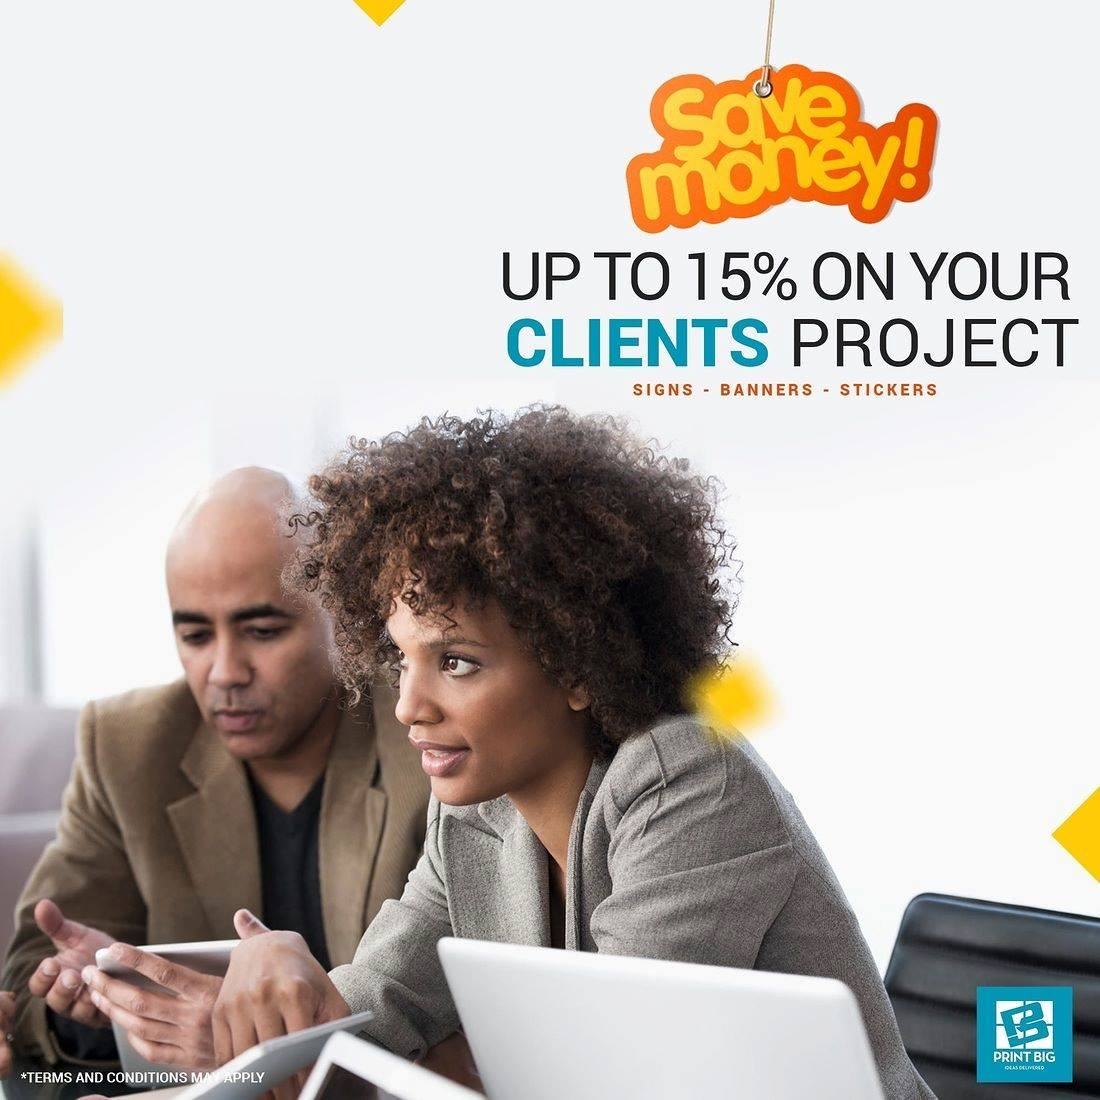 SAVE MONEY You Your Business and Your Clients